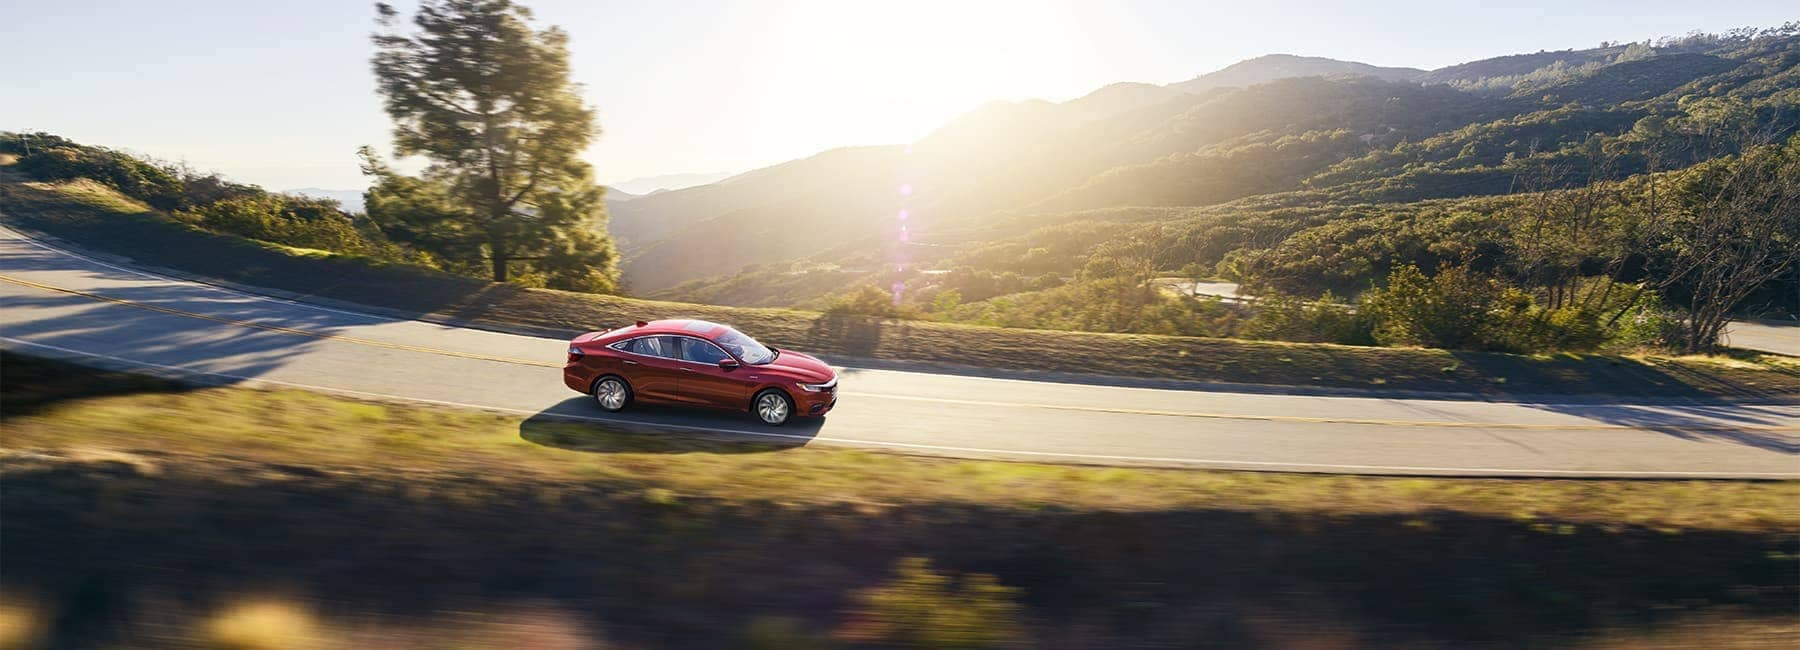 2021-honda-insight-driving-in-the-mountains